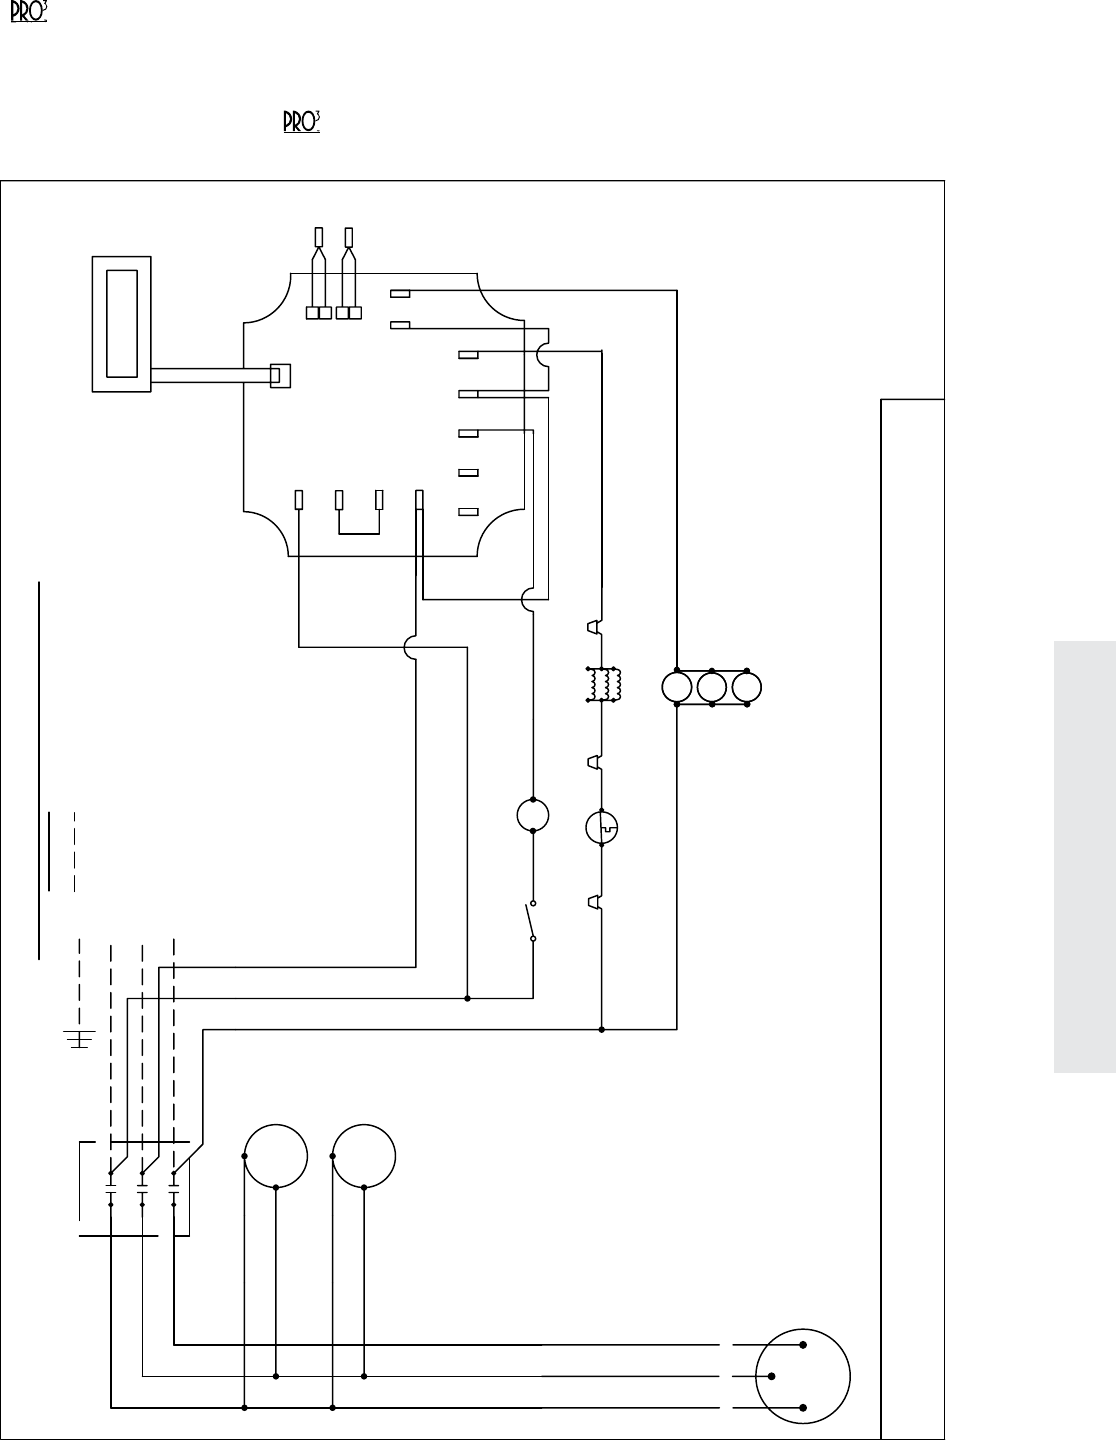 b8616a9a 7649 411a b648 d6245cba7e20 bg13 page 19 of heatcraft refrigeration products refrigerator h im 82b heatcraft wiring diagram at mifinder.co